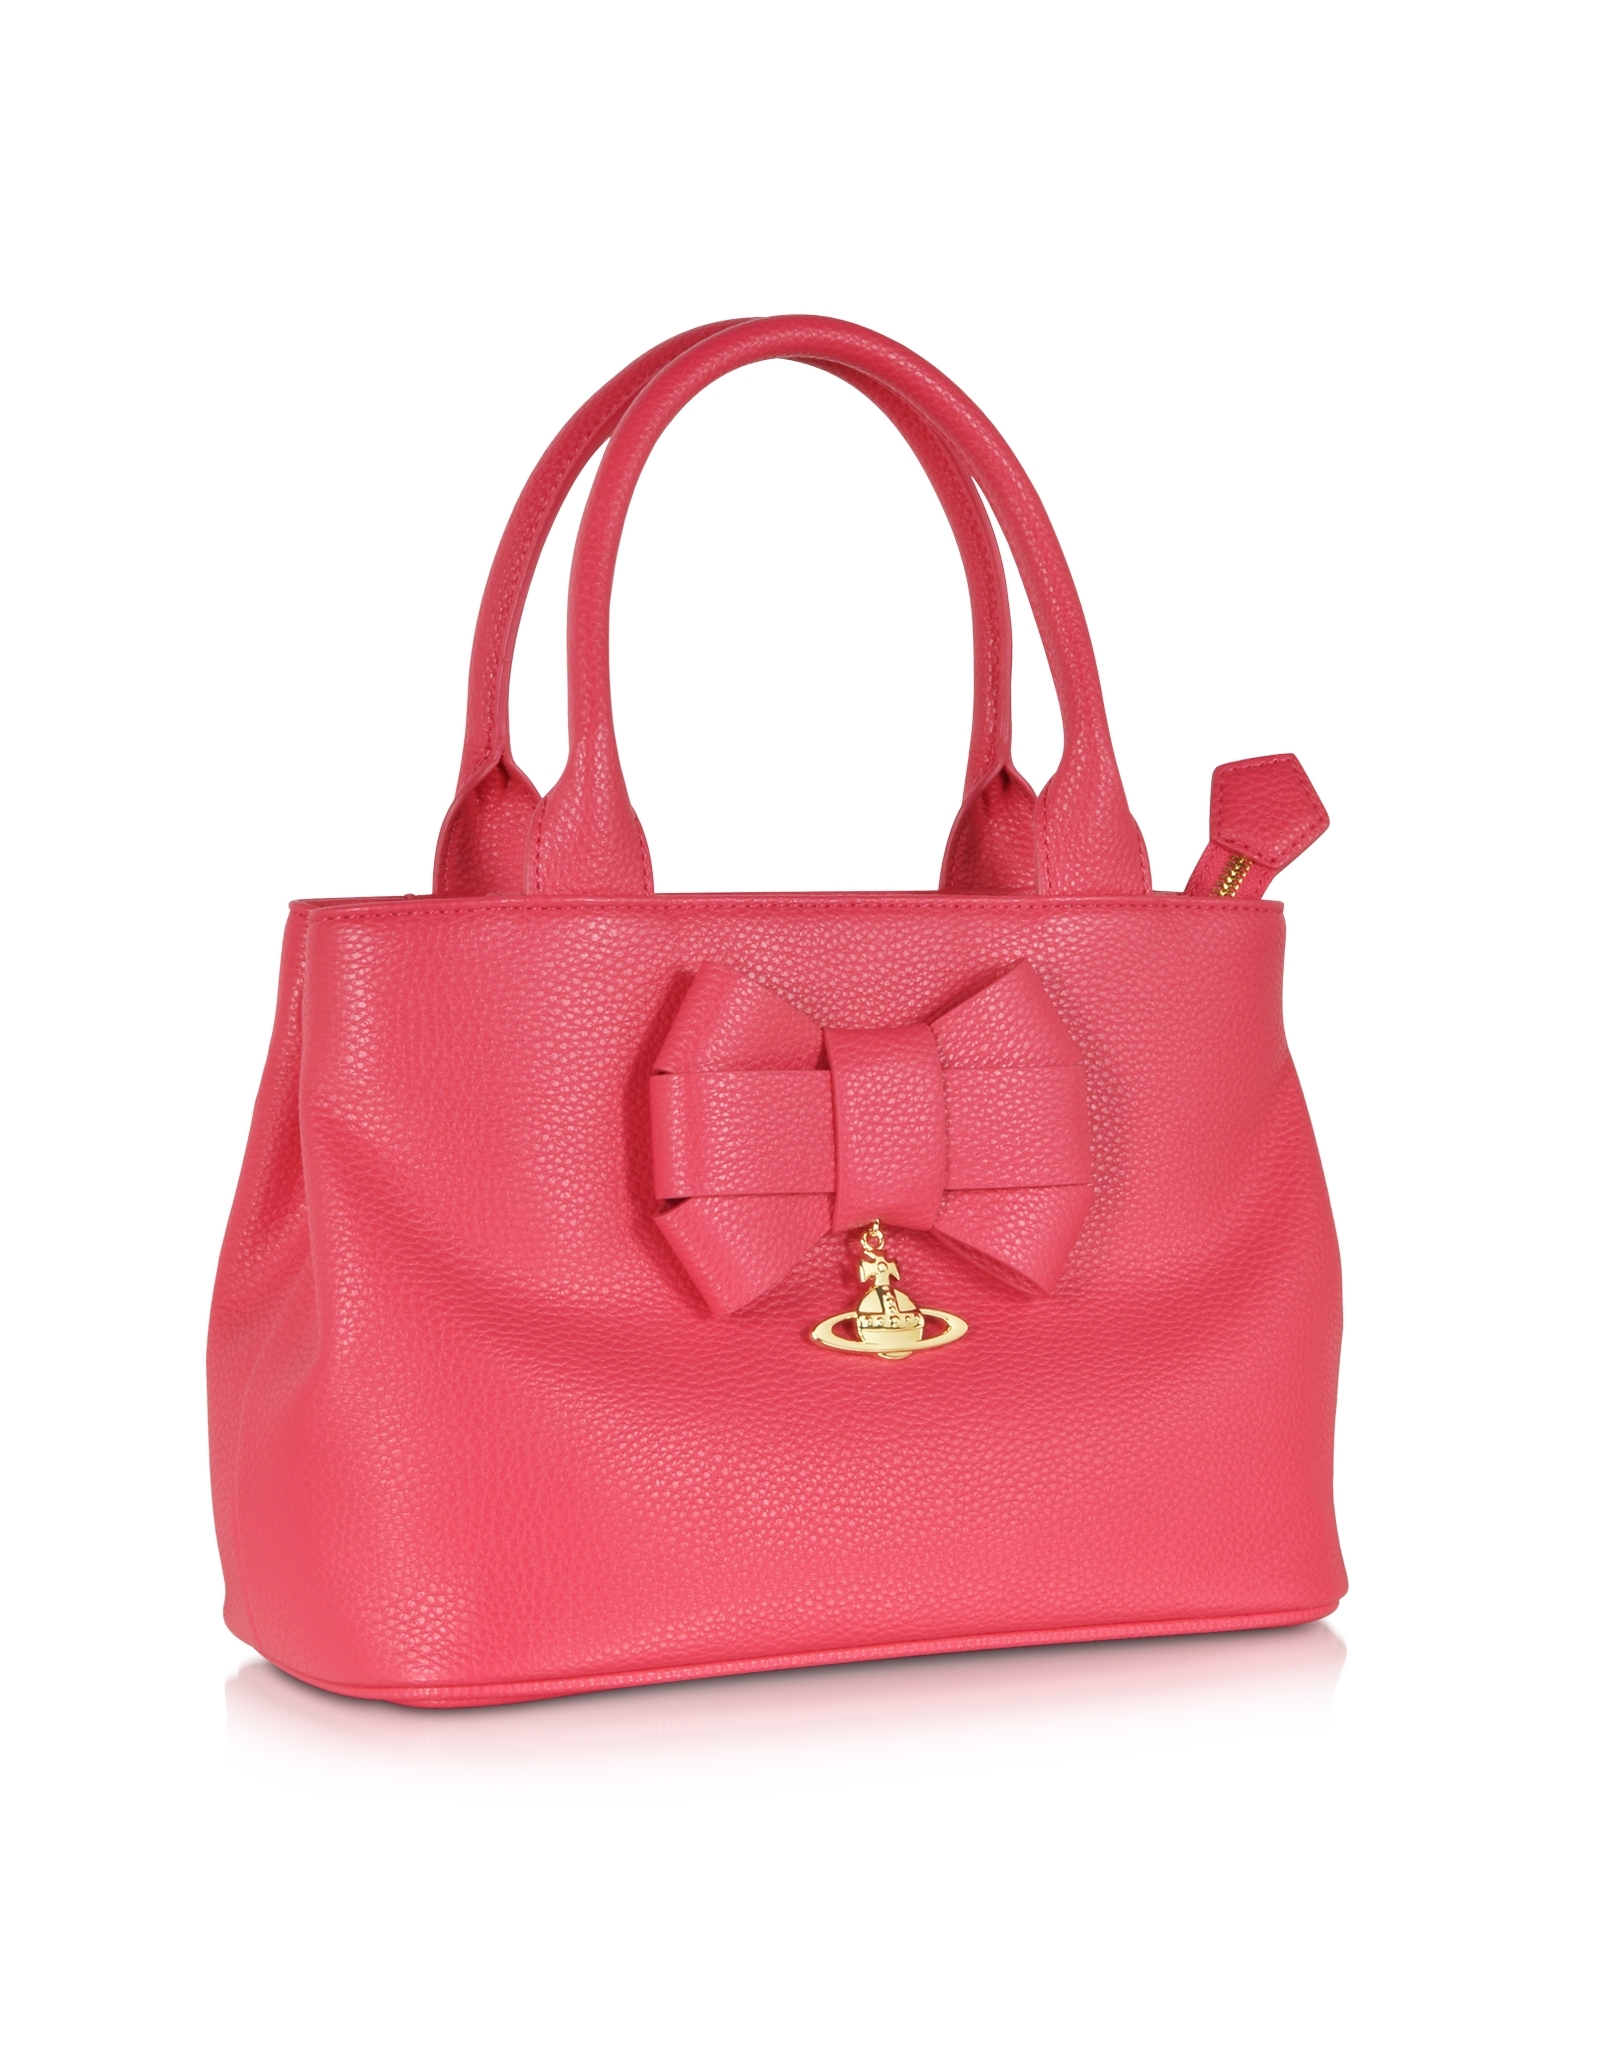 5c35be3817 Lyst - Vivienne Westwood Bow Strawberry Eco-Leather Satchel in Red